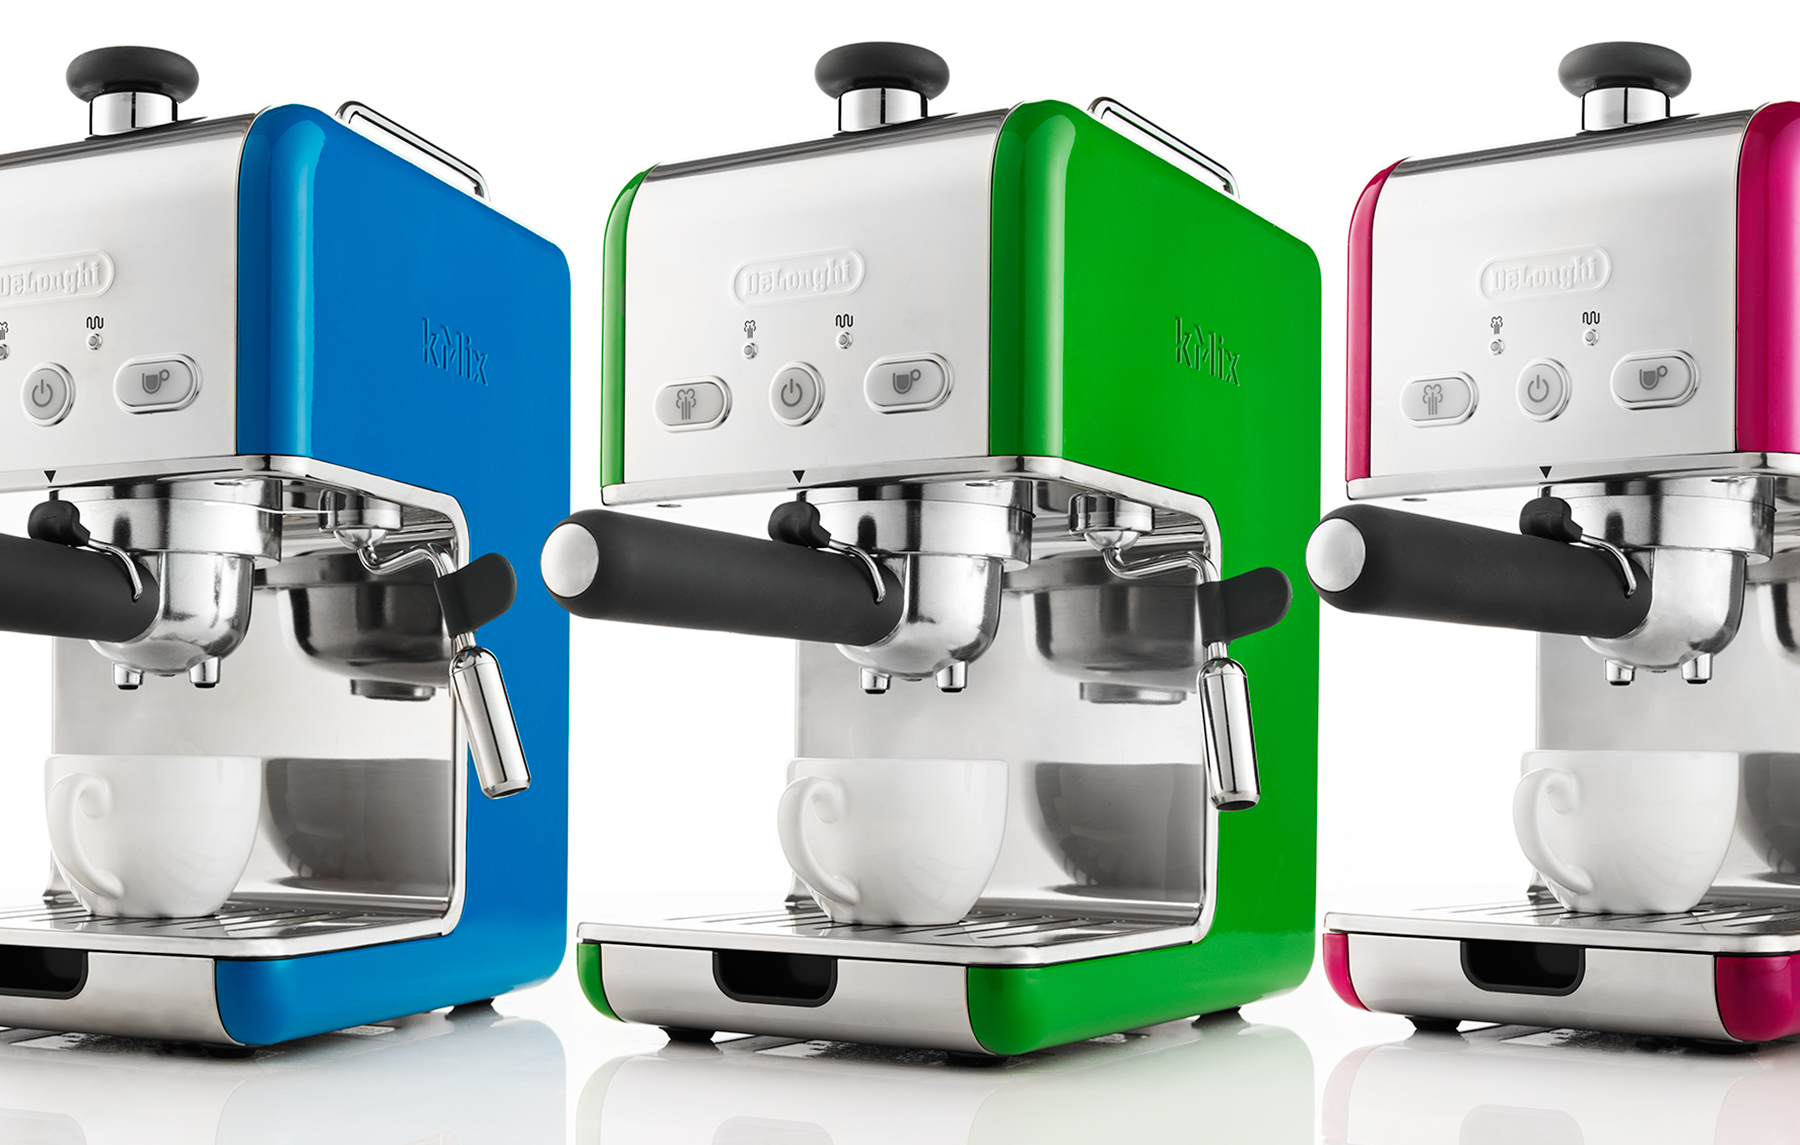 Colorful DeLonghi Espresso Makers | Dovis Bird Agency